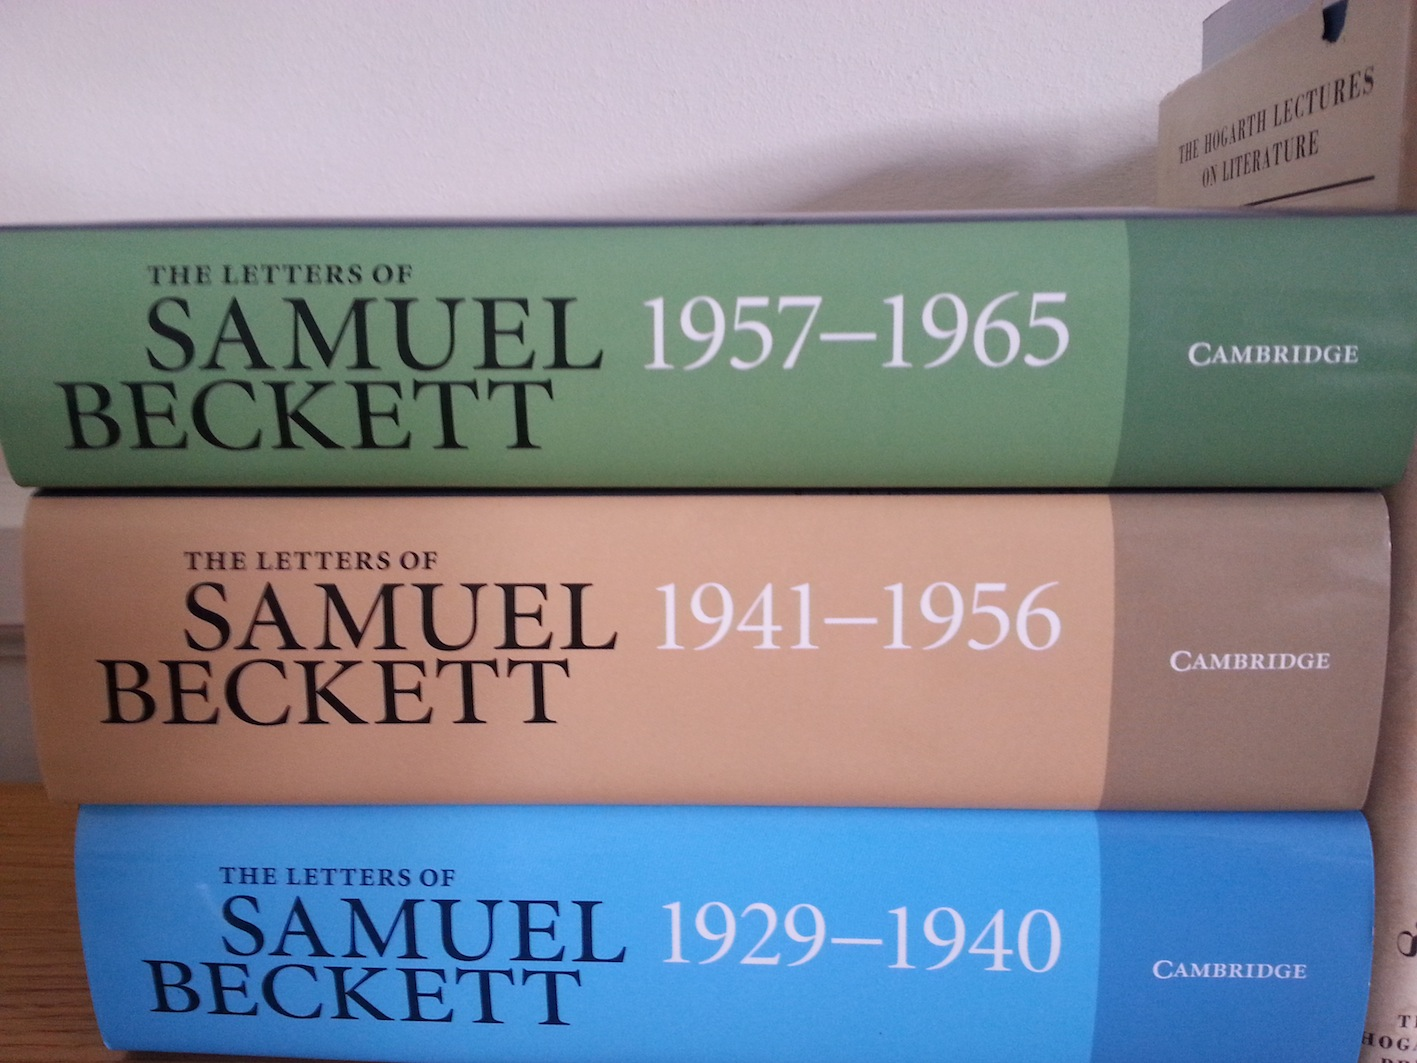 Beckett's Letters